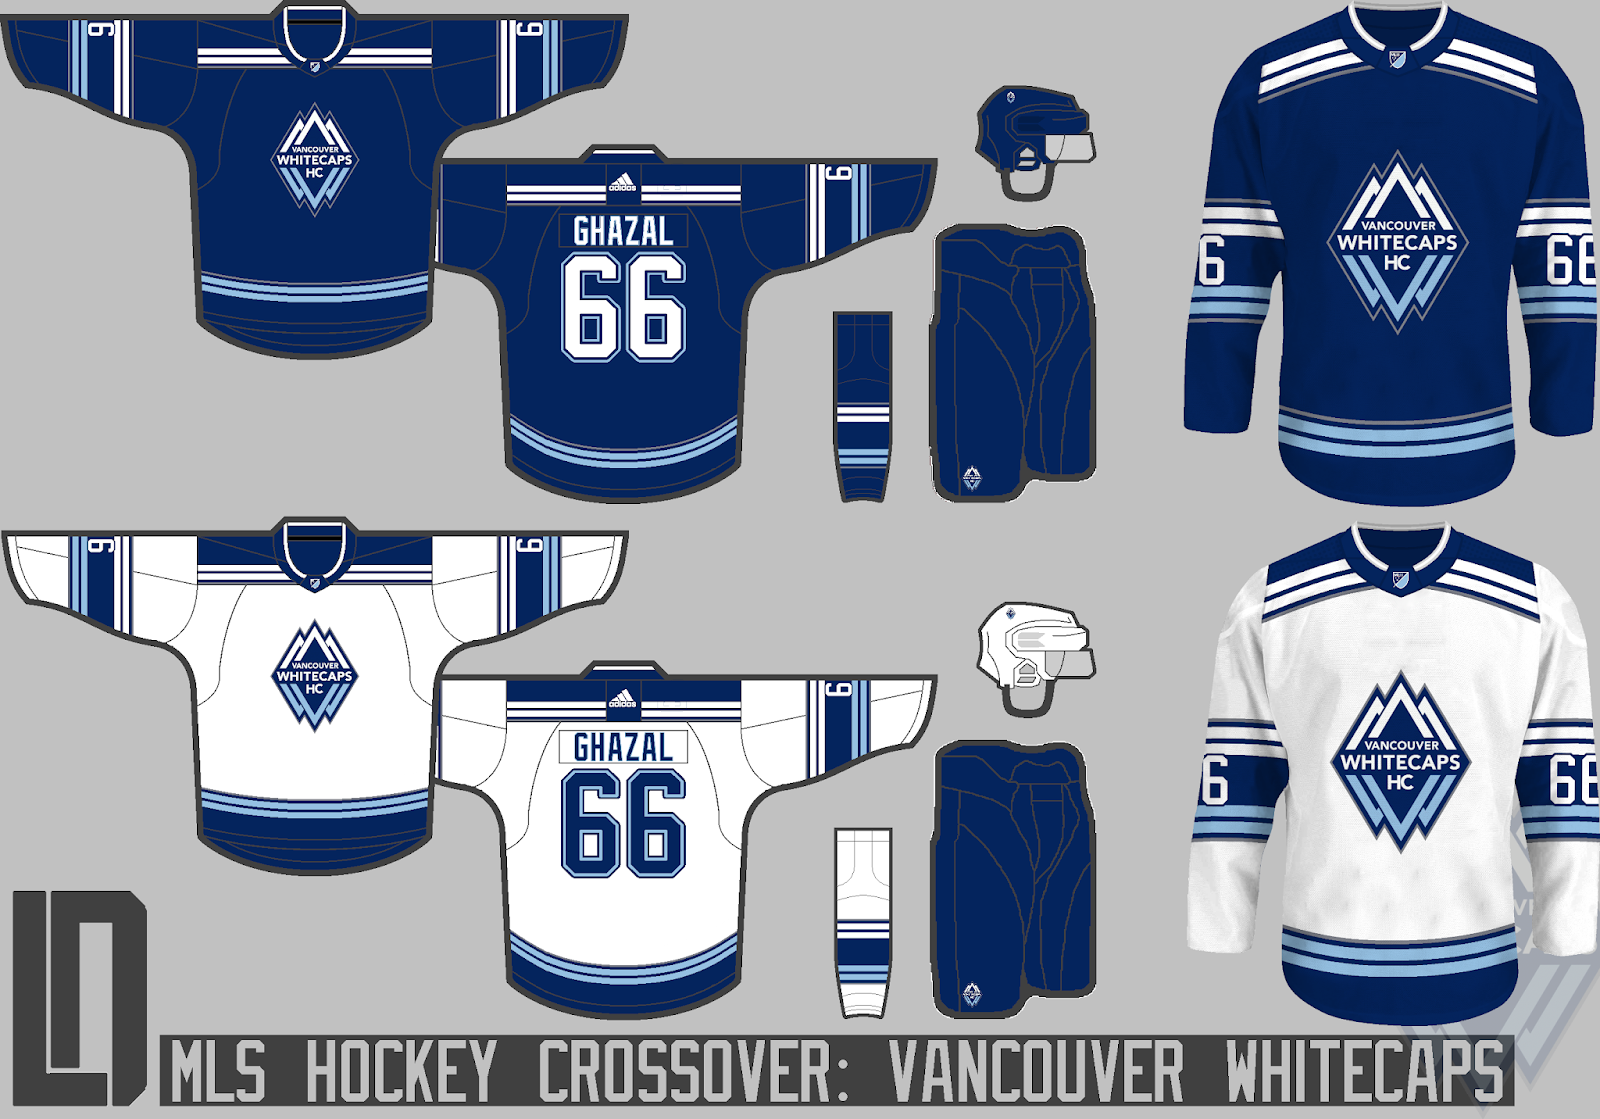 Vancouver+Whitecaps+Concept.png